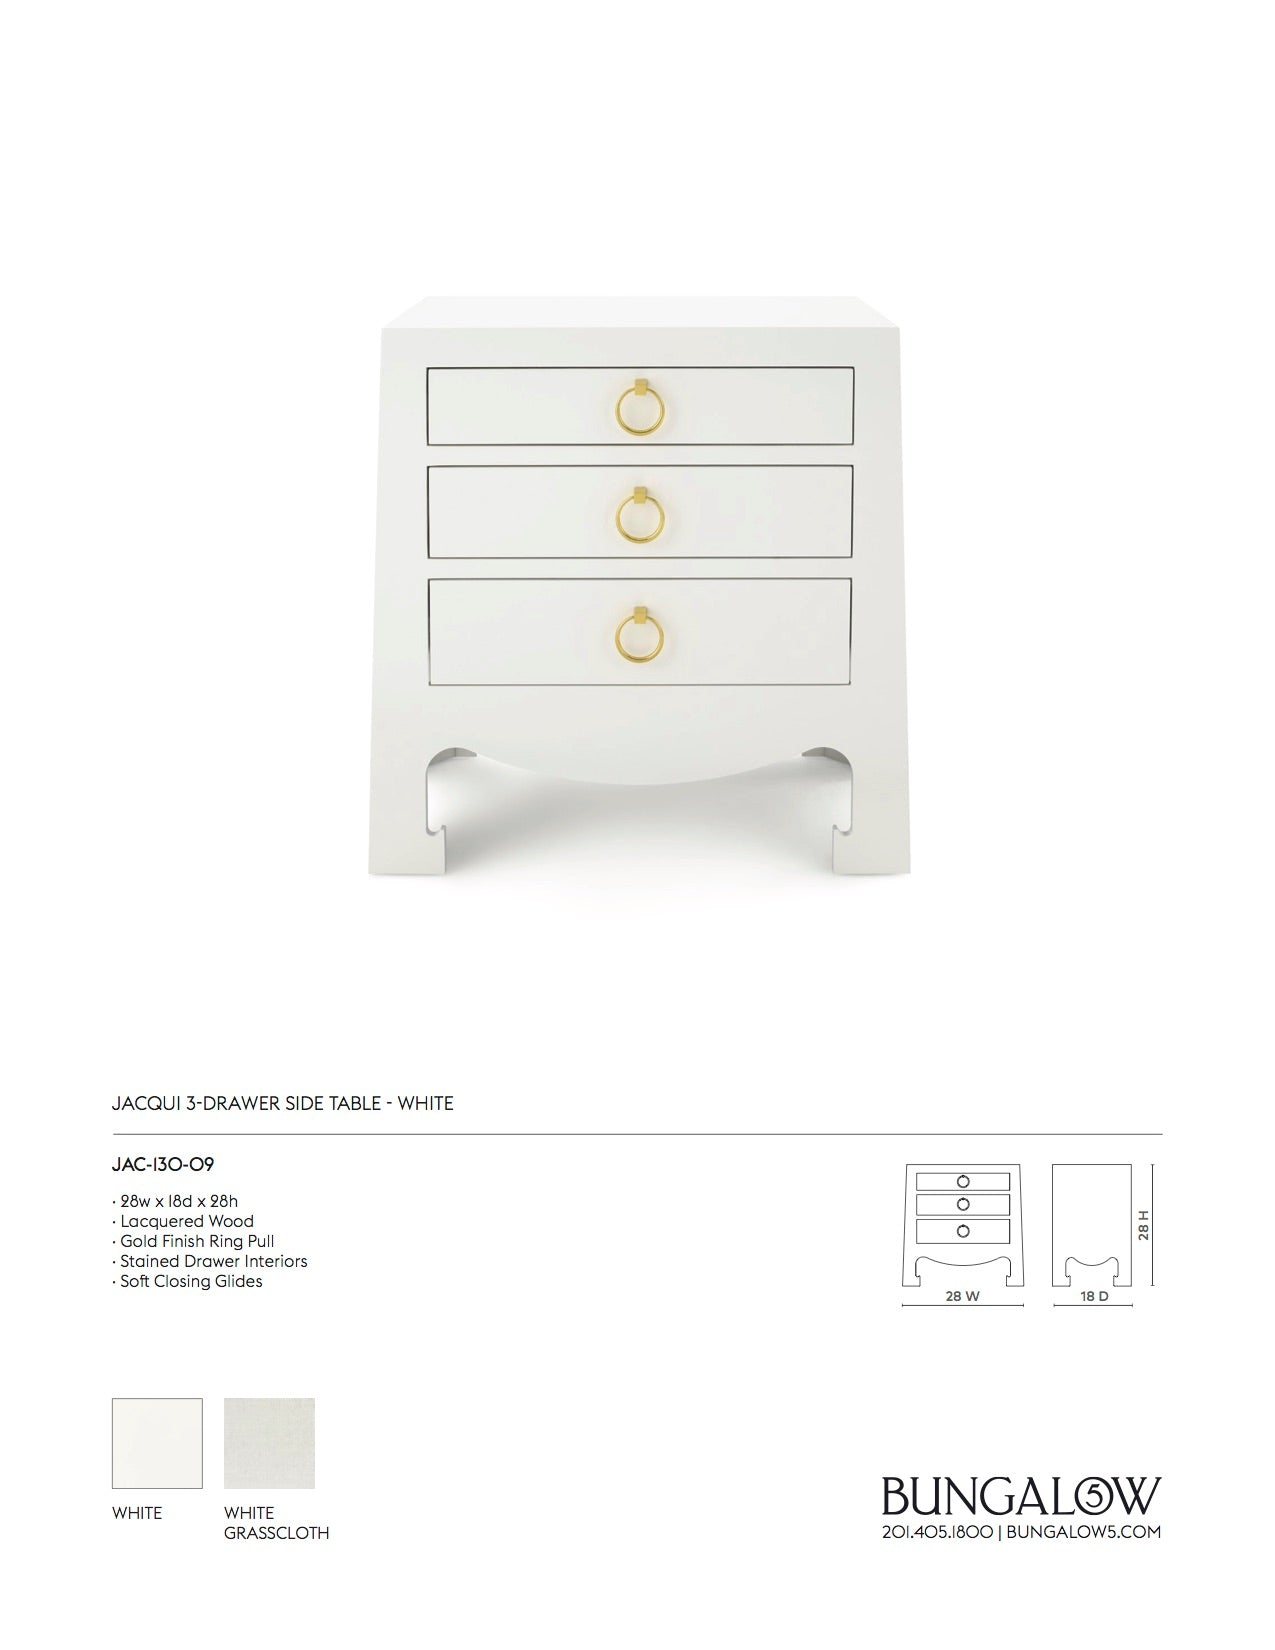 Bungalow 5 Jacqui 3 Drawer Side Table White Tearsheet